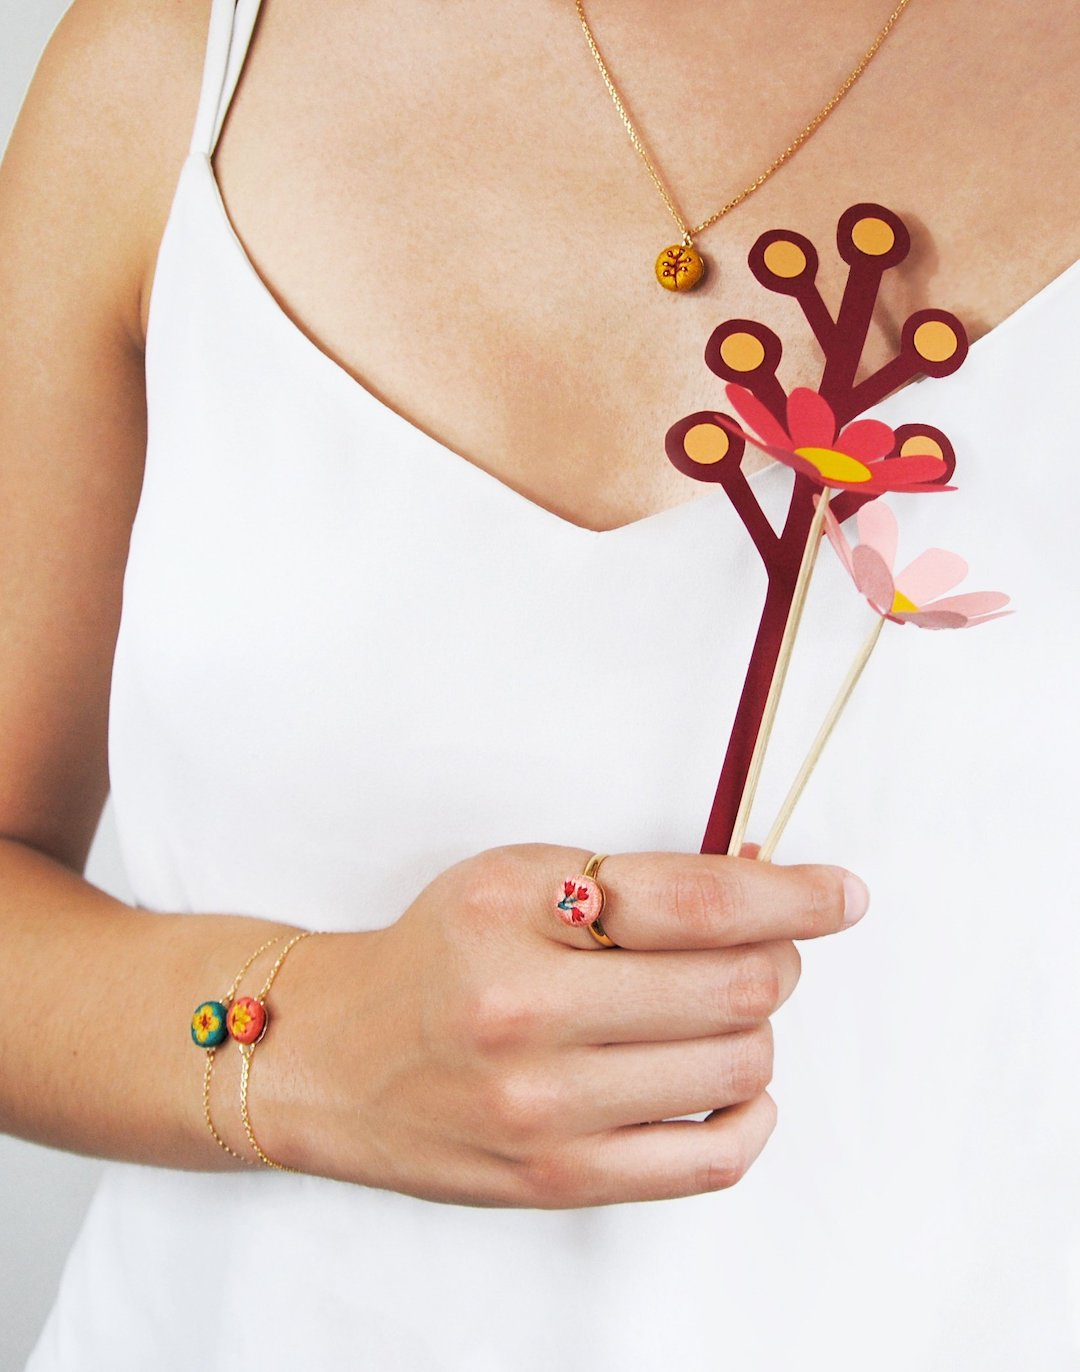 Embroidered jewelry by Les Amants de Minuit